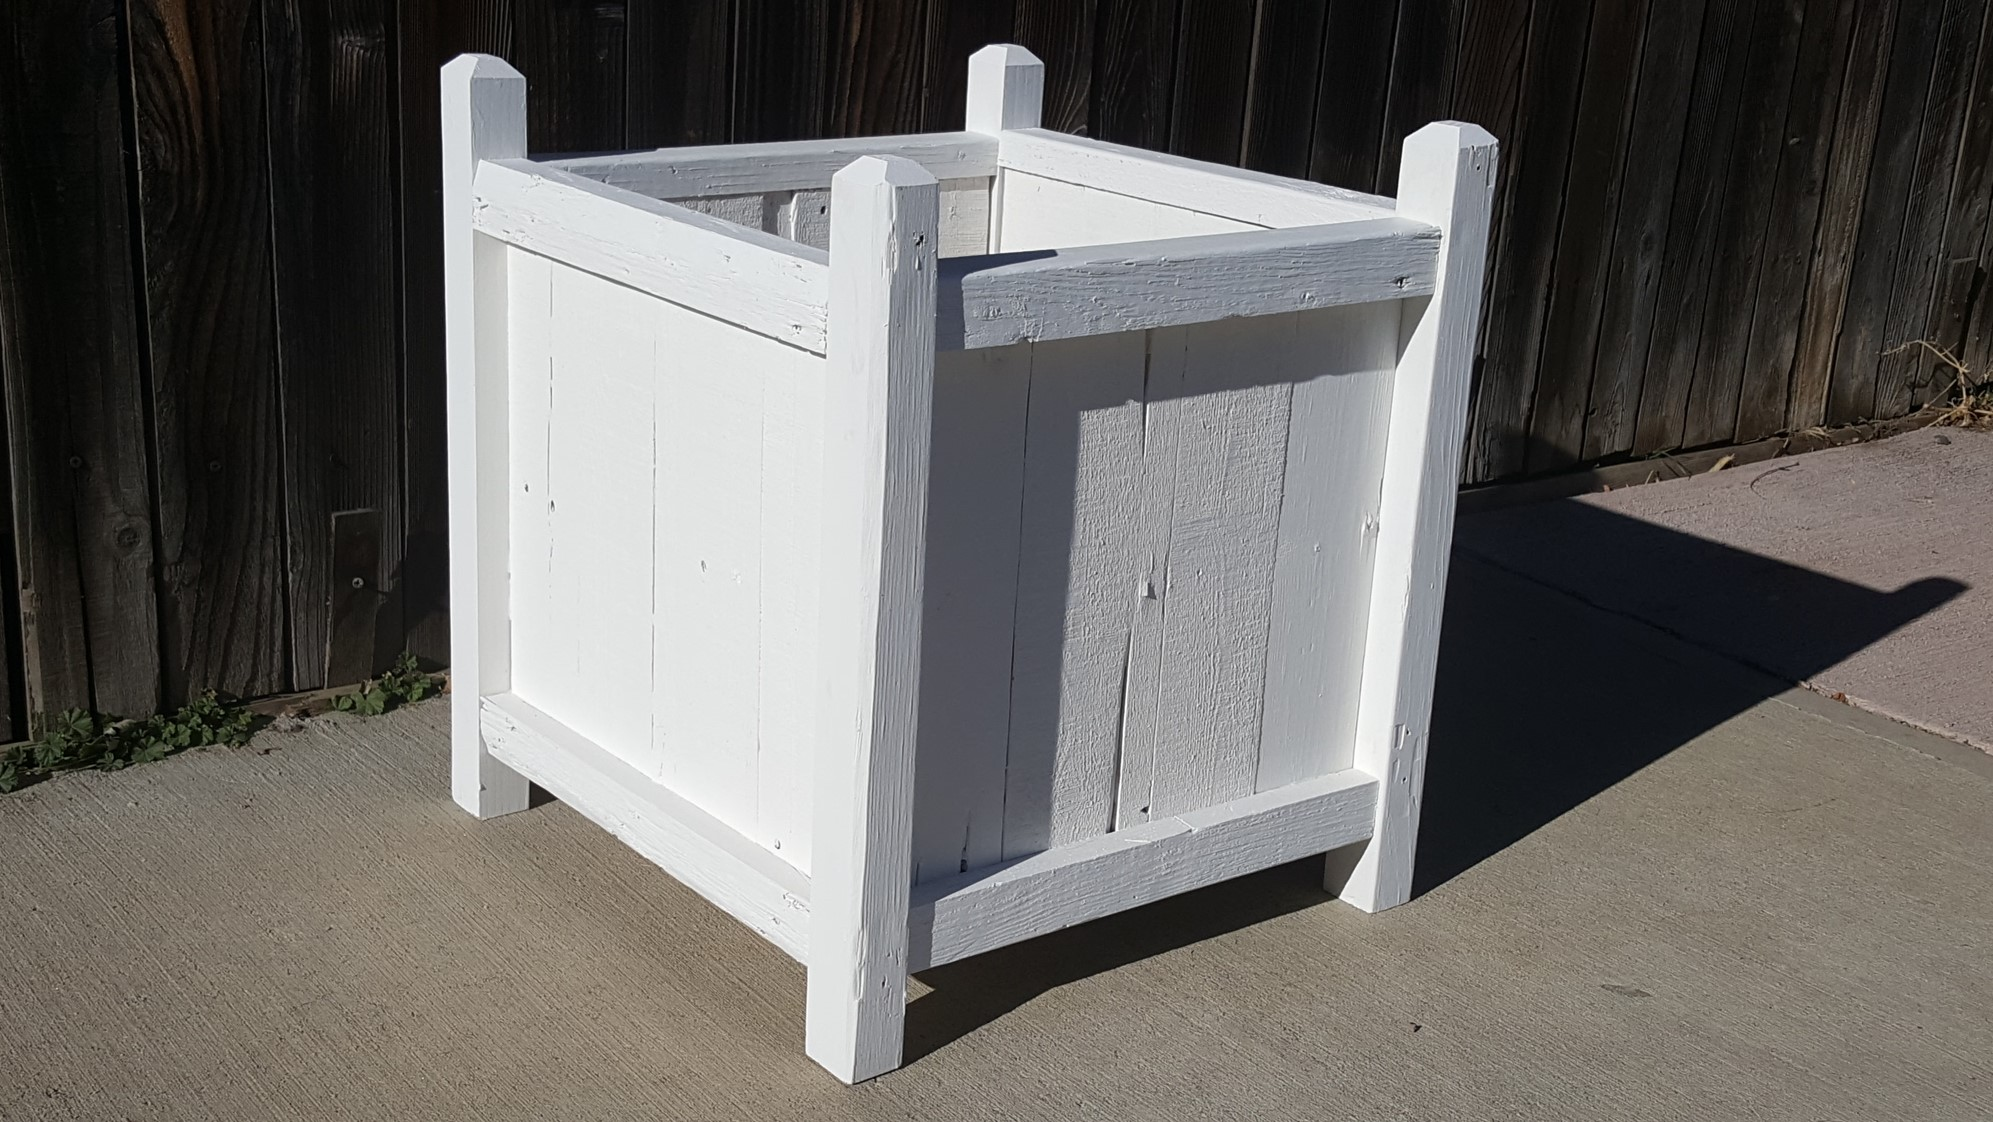 PLANTER BOXES - Planters of all shapes and sizes to accommodate the space you have for flowers or herbs. Makes for a great housewarming gift!